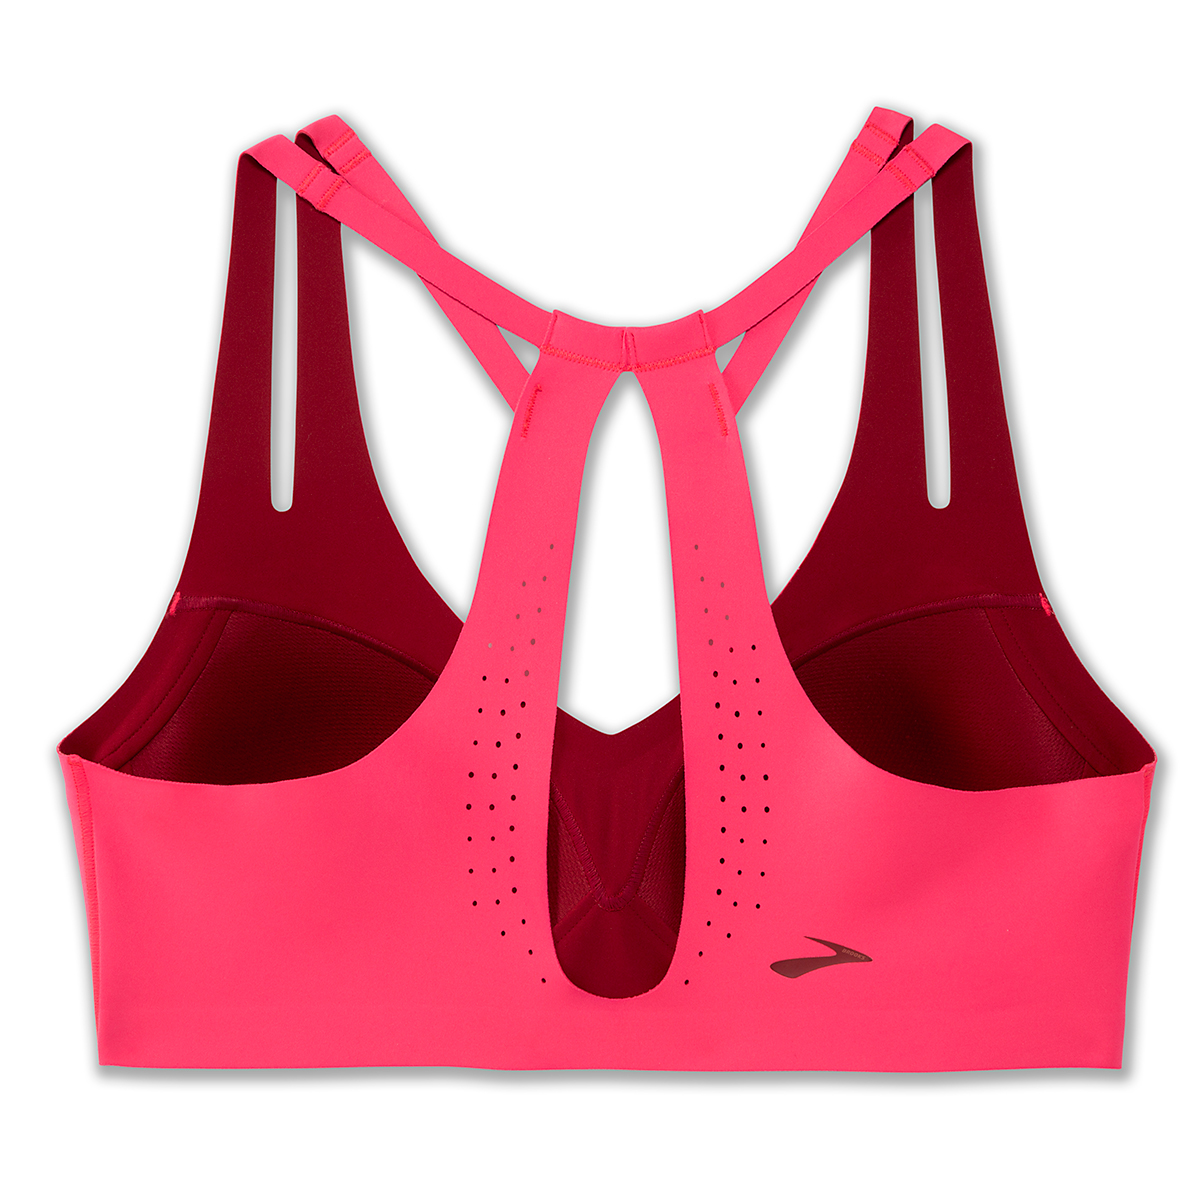 Women's Brooks Dare Strappy Bra - Color: Hot Pink - Size: 30A/B, Hot Pink, large, image 4